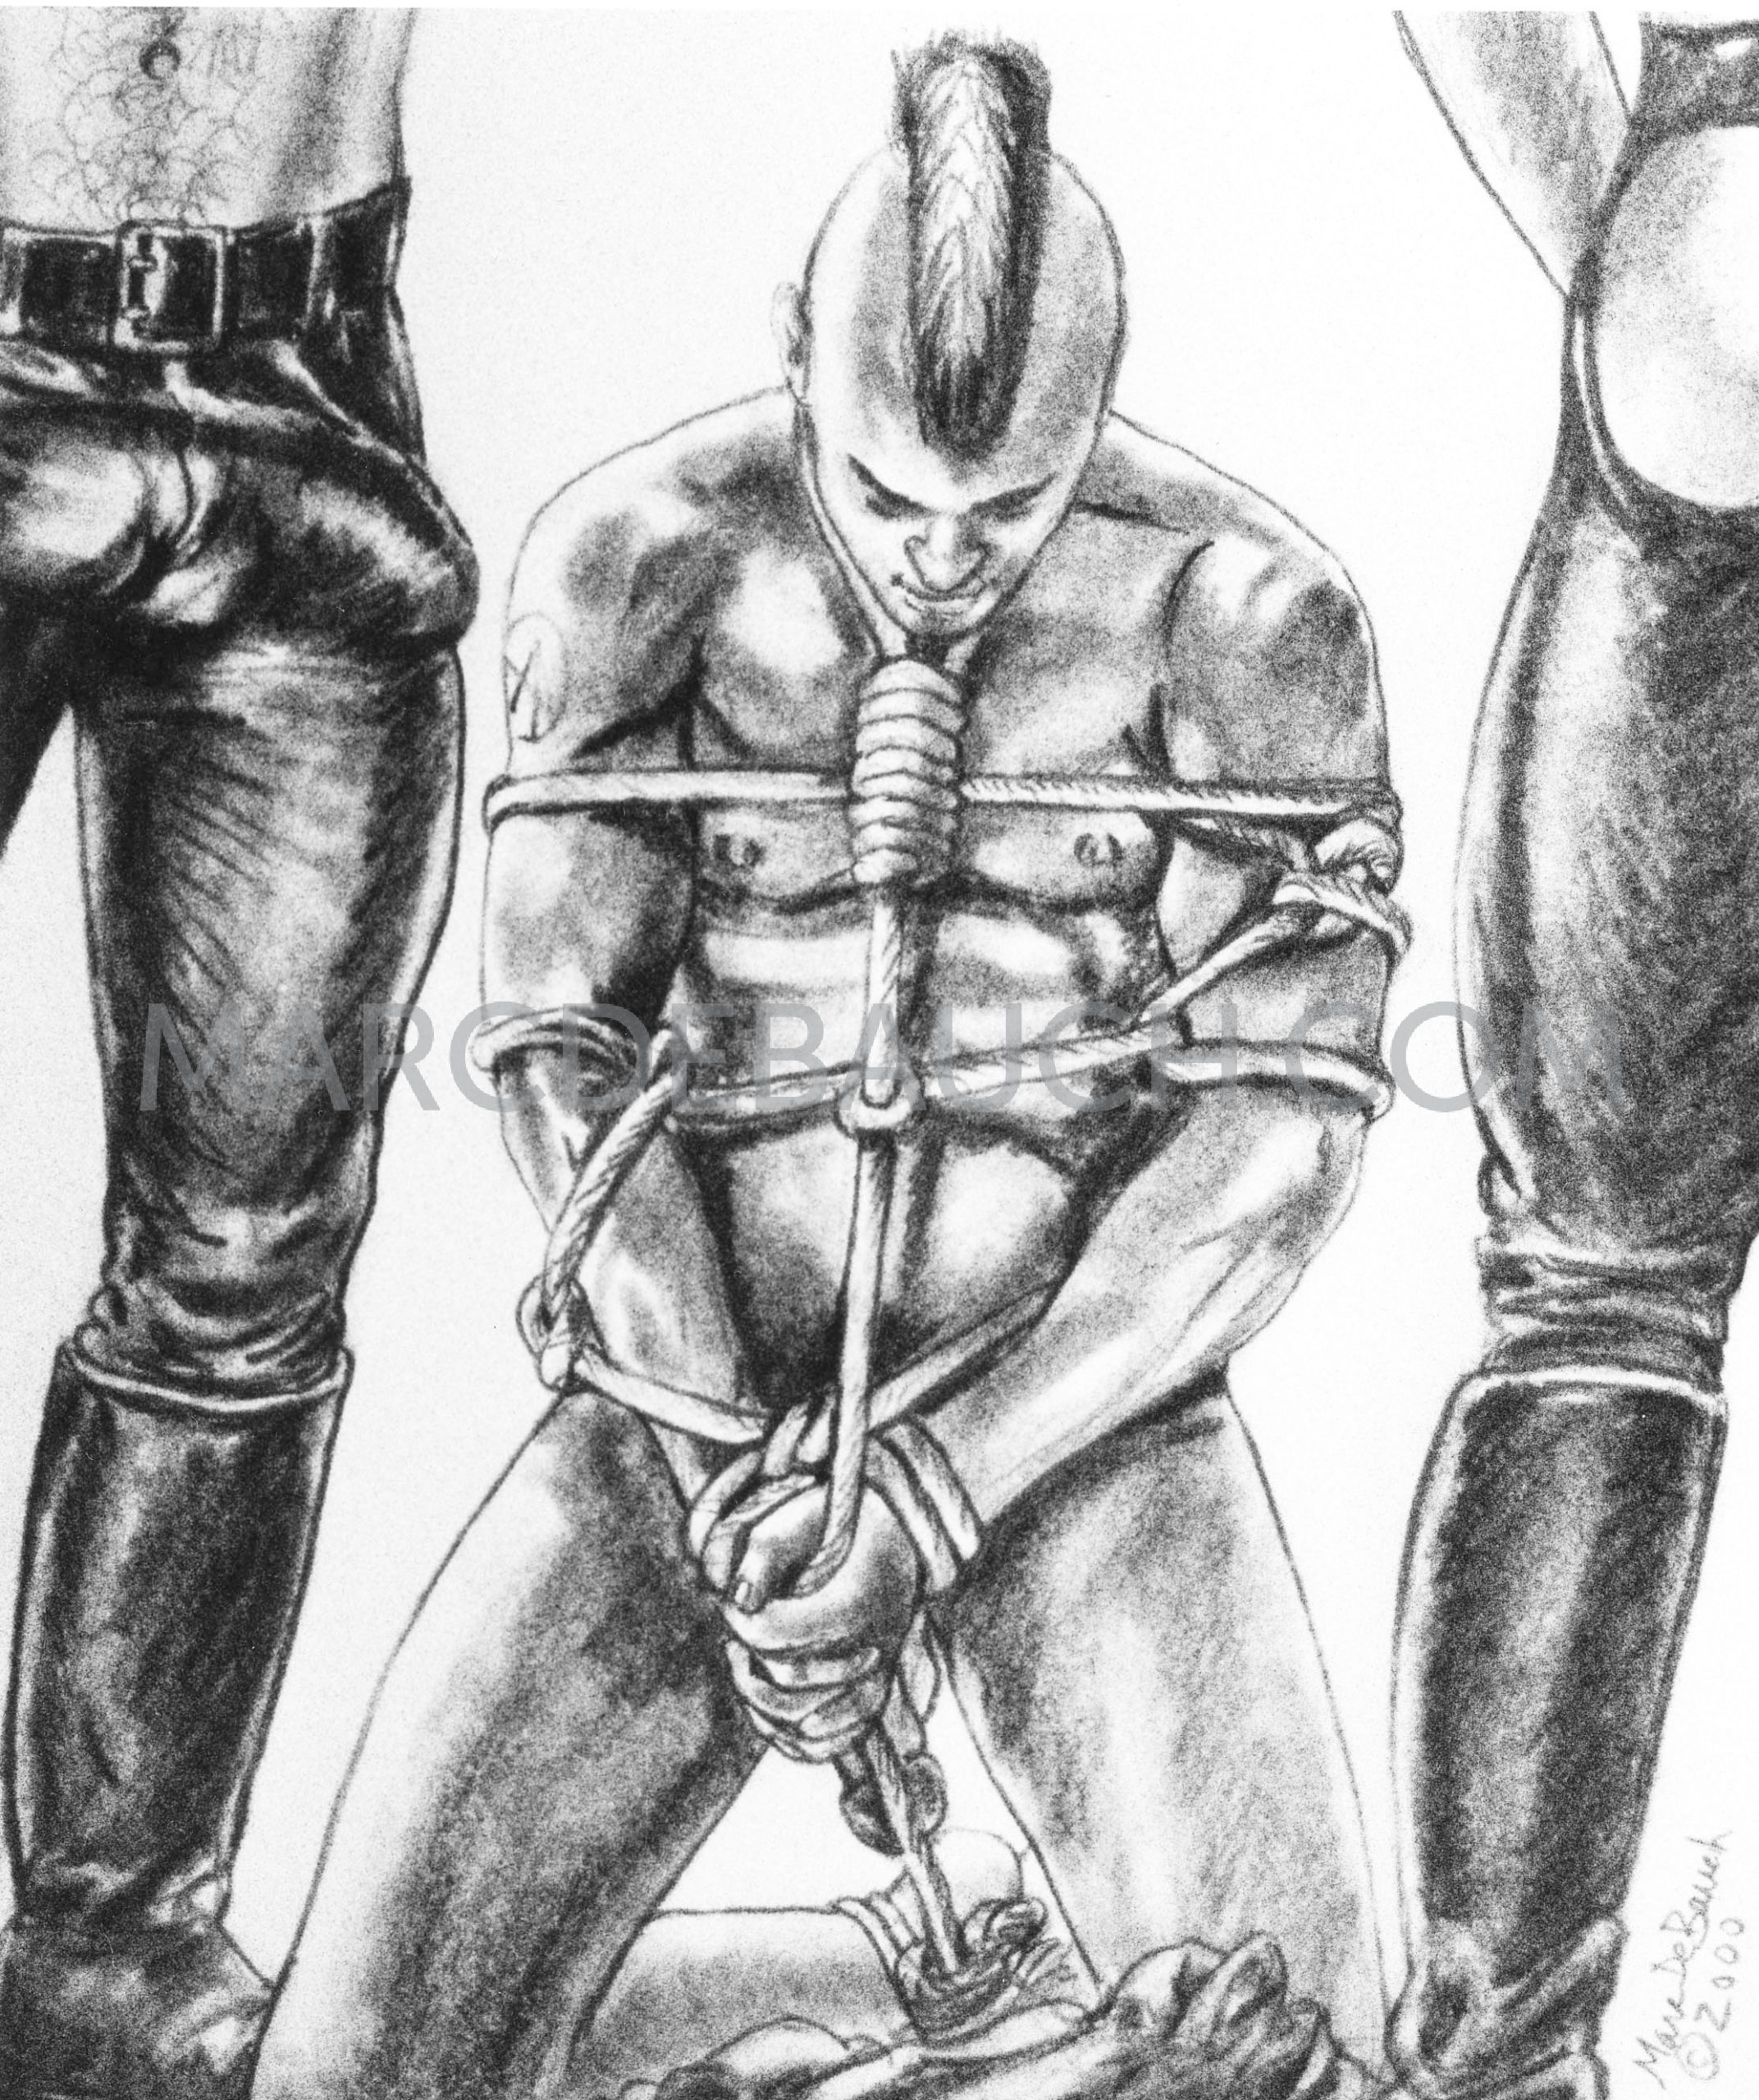 PUNK IN BONDAGE